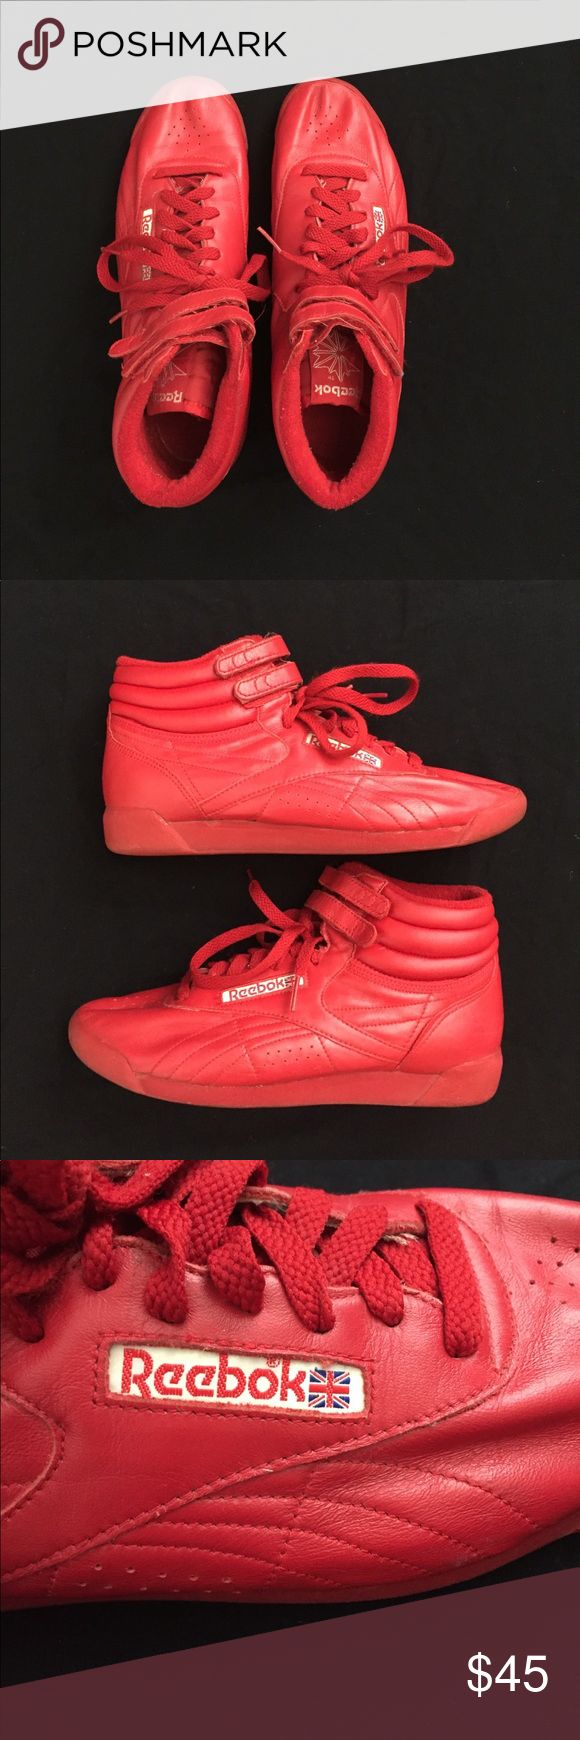 Reebok hightops Red leather women's Reebok Freestyle hightops. Womens size 9.5. Used but still in good condition. Still has alot of wear to them. Some scuffs. Slight leather cracking on inner side of both shoes (last pic). Reebok Shoes Athletic Shoes